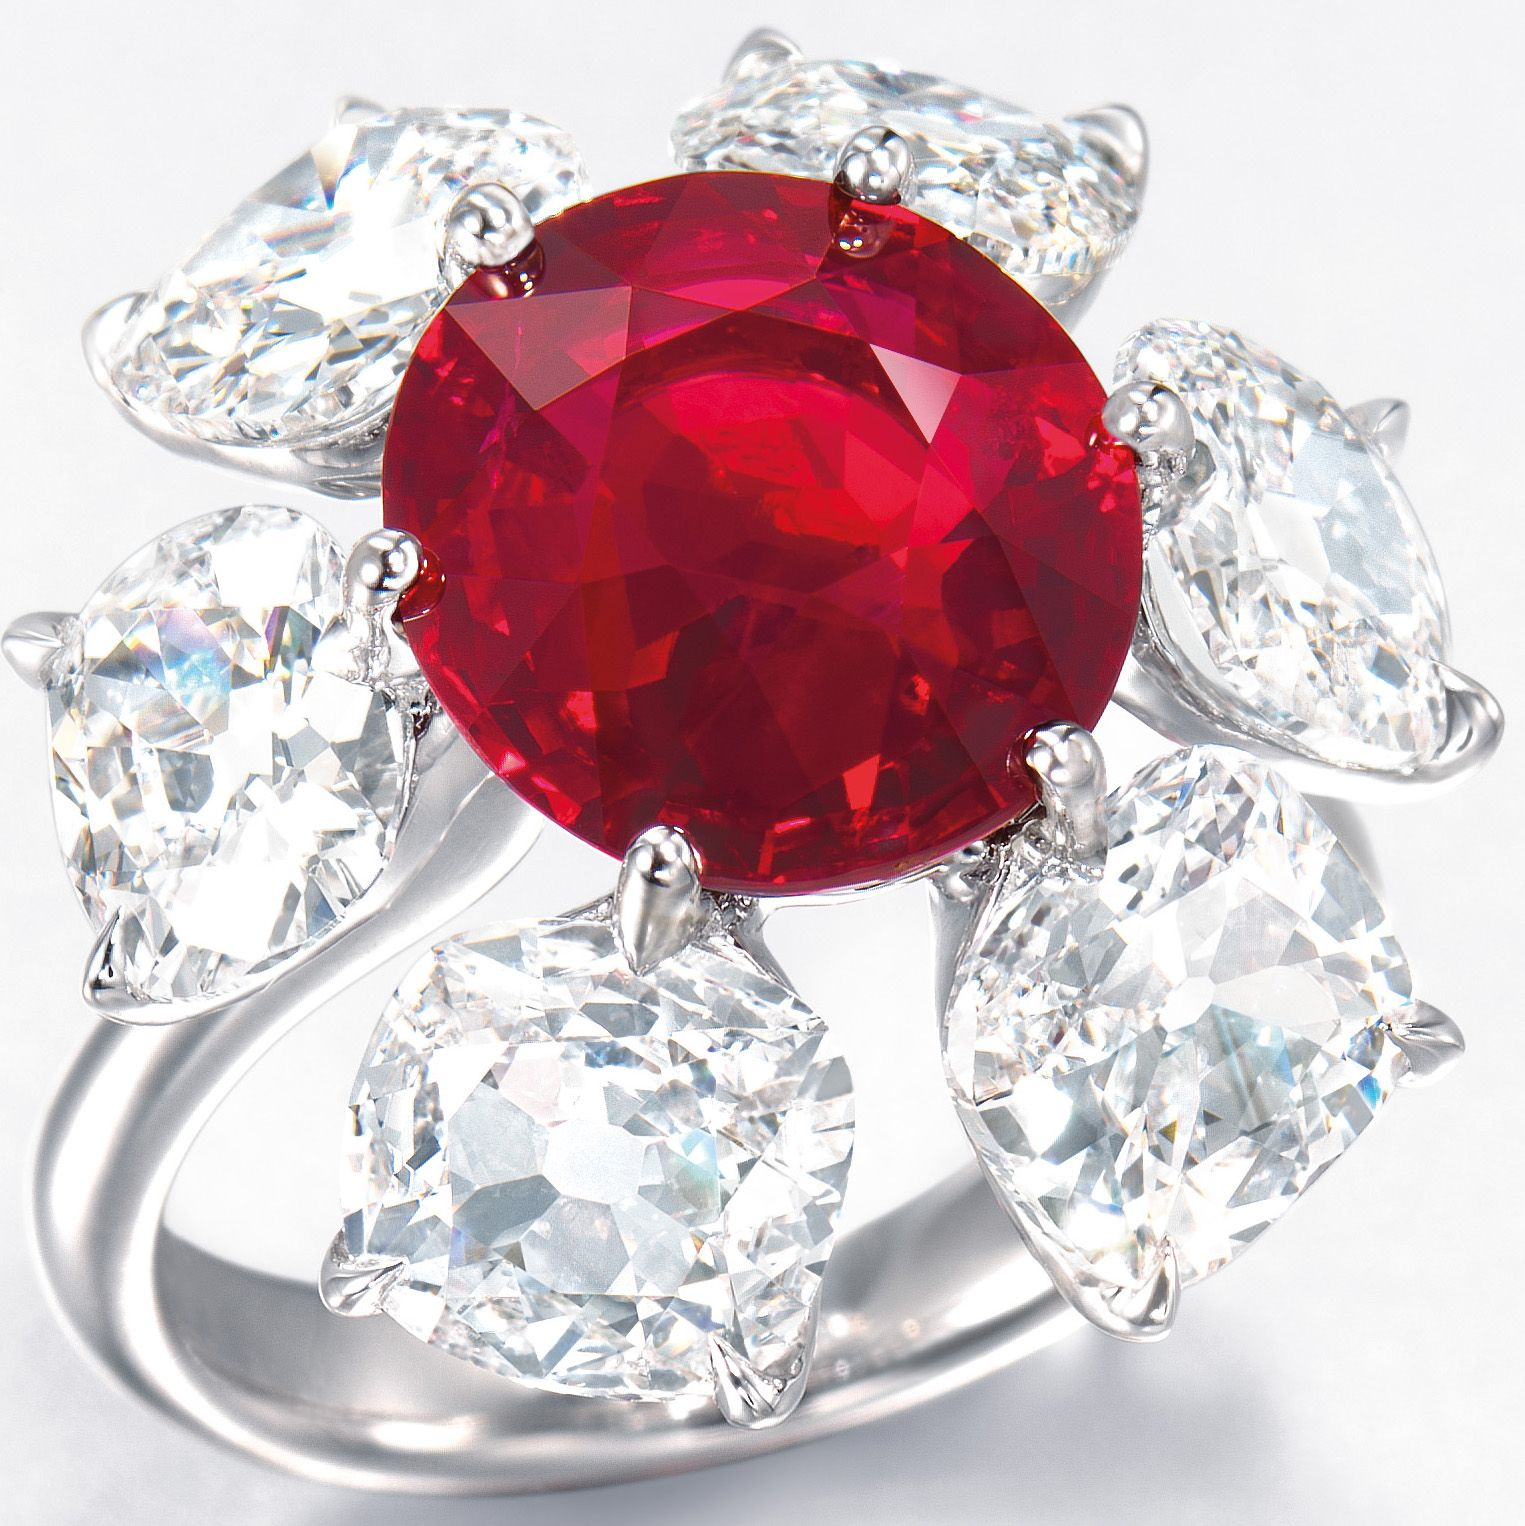 ruby pigeon diamond rings carats rubyring s gemstones collecting estimate hong fine red a style unheated and resized to burmese jewellery blood definitive hk guide ring